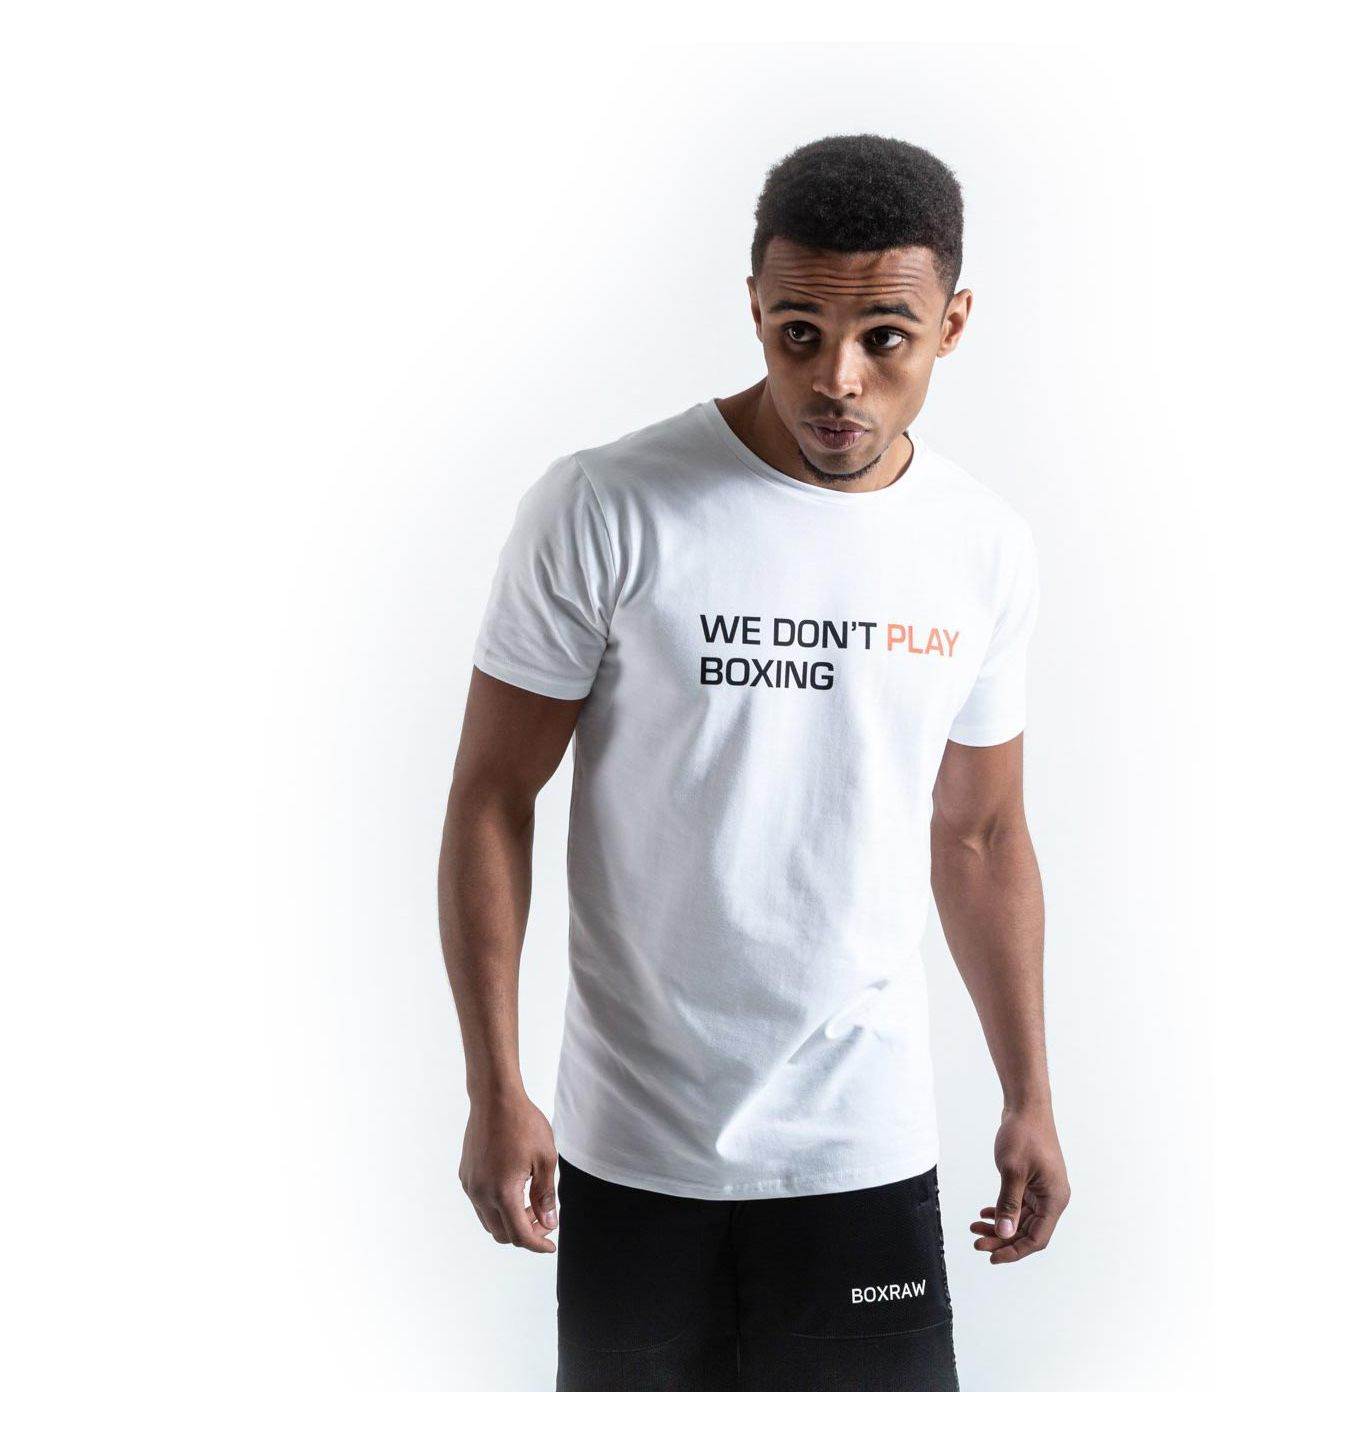 You Can T Play Boxing Shirt: Mens T-shirt Boxraw We Don't Play Boxing